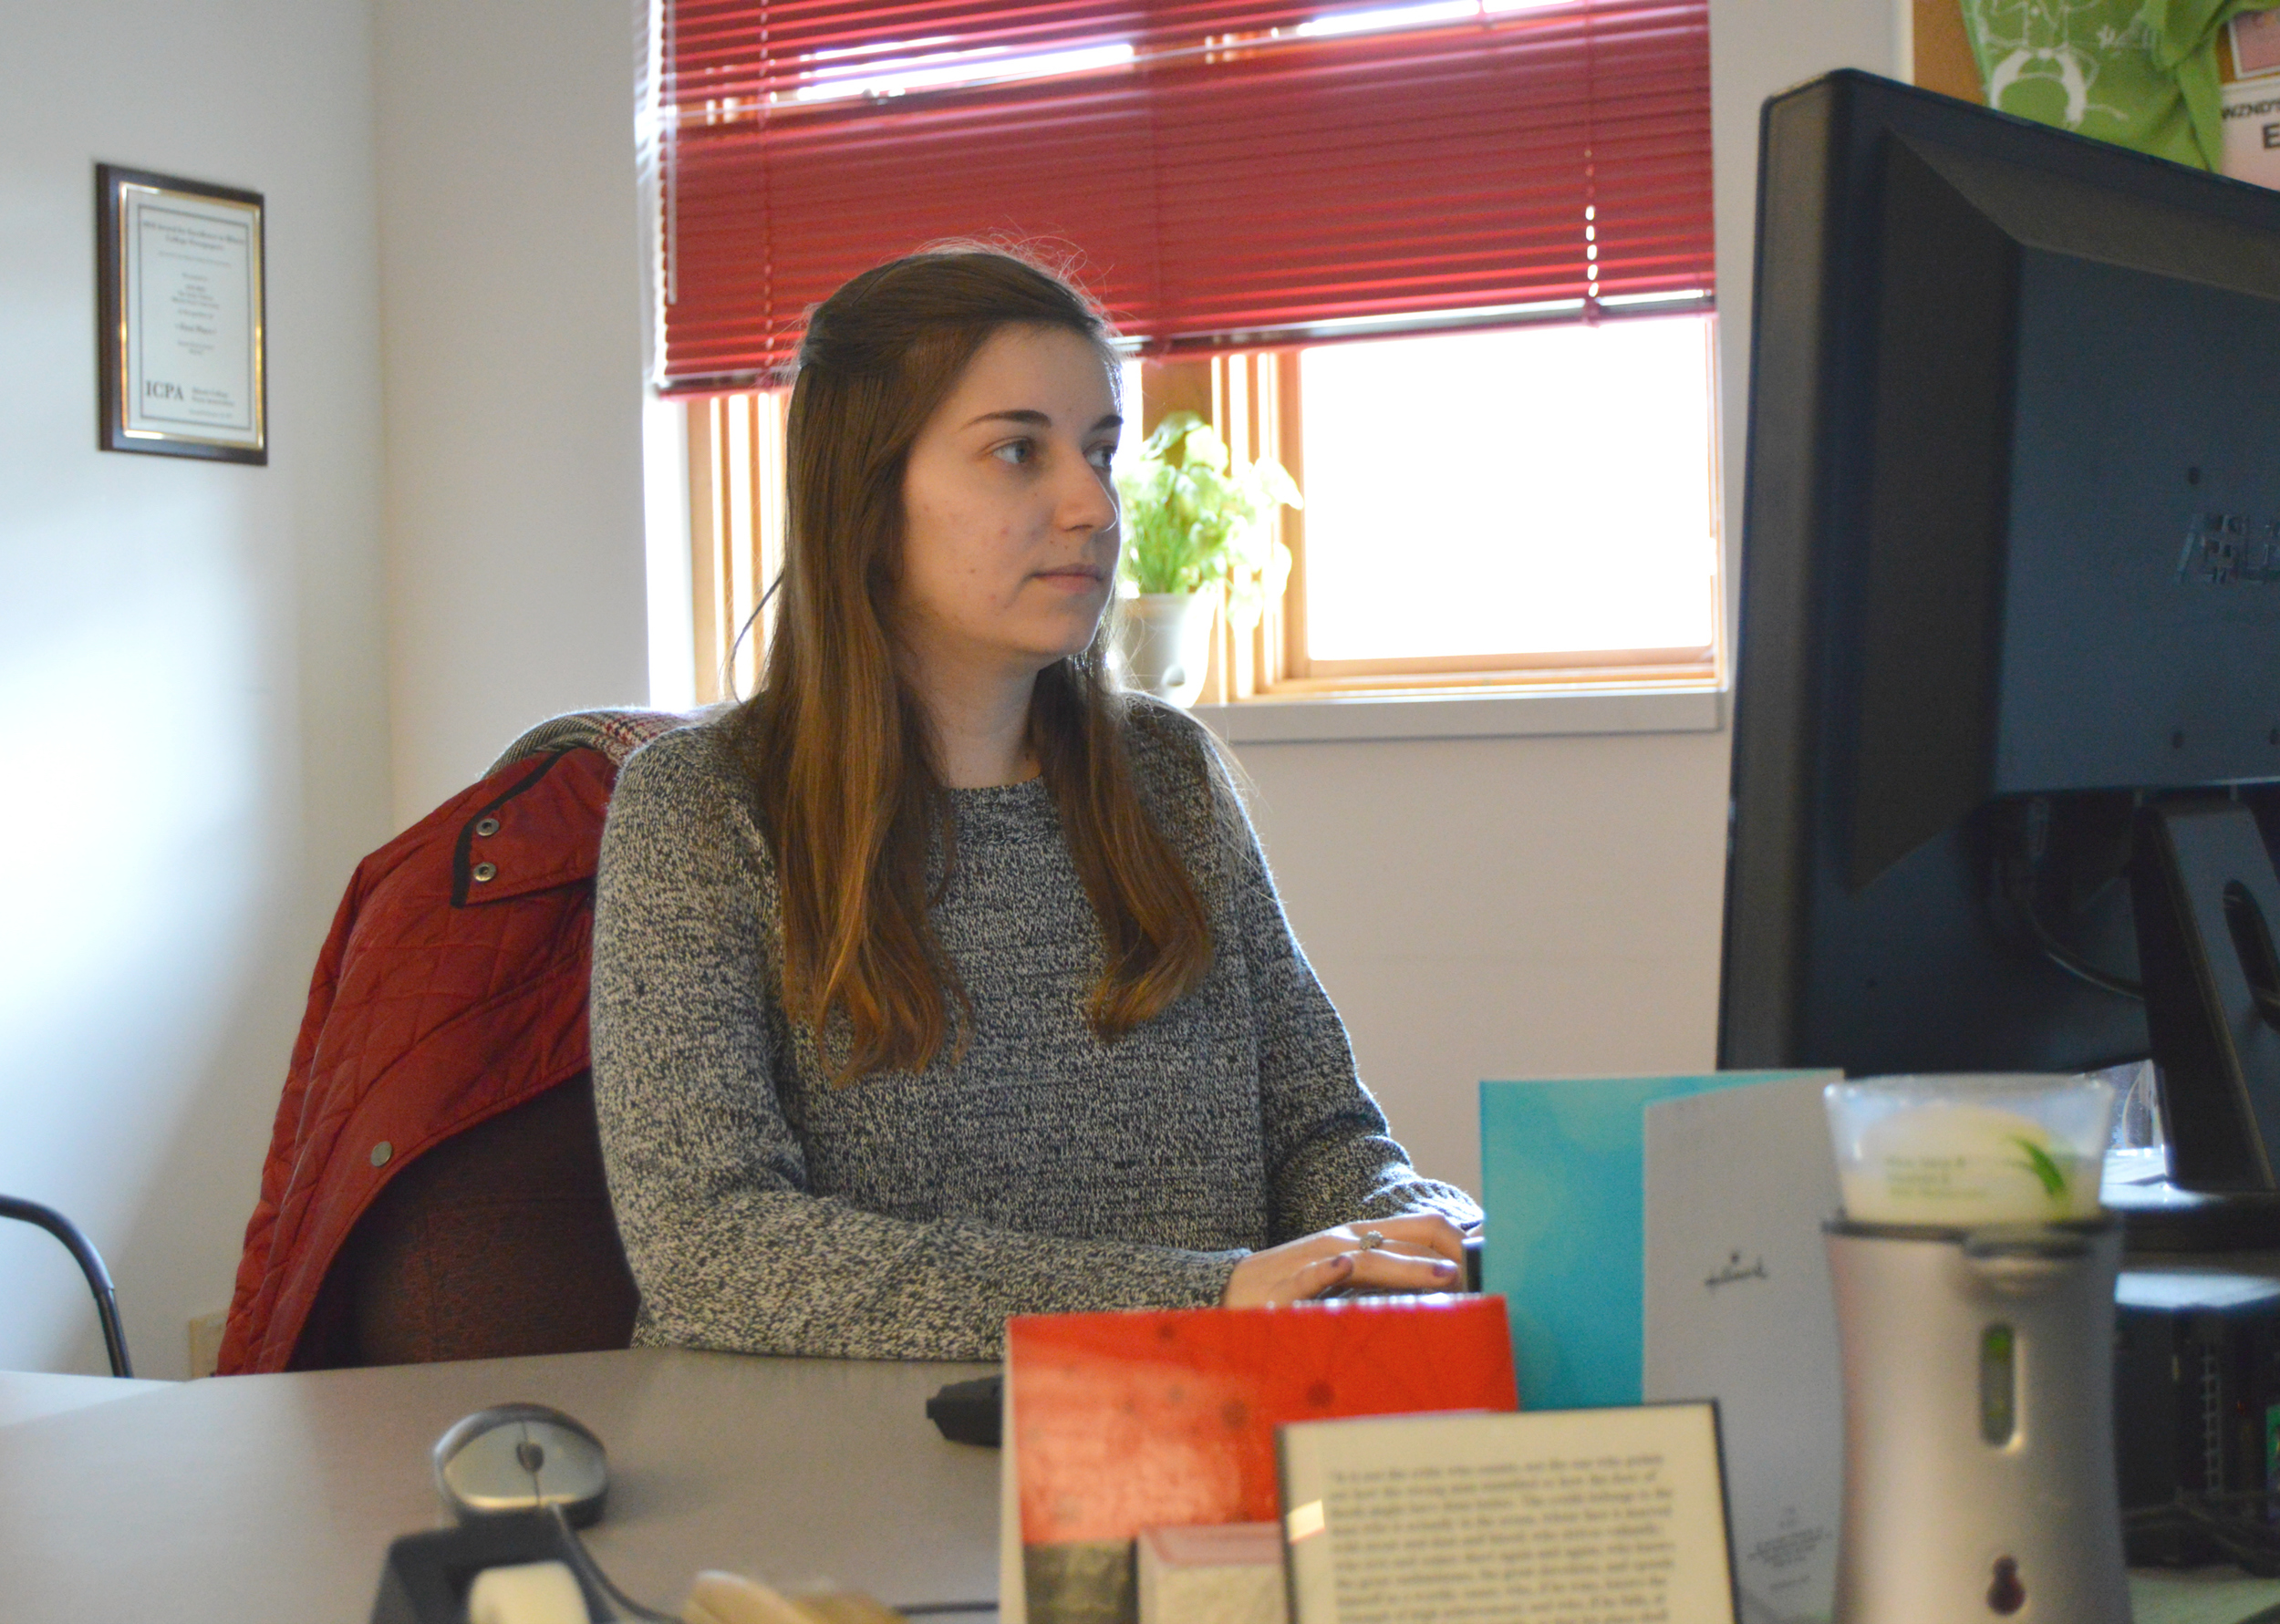 Ema Sasic took over as Editor-in-Chief of The Vidette, Illinois State University's student newspaper, in August 2017. The senior journalism major is set to graduate in May.